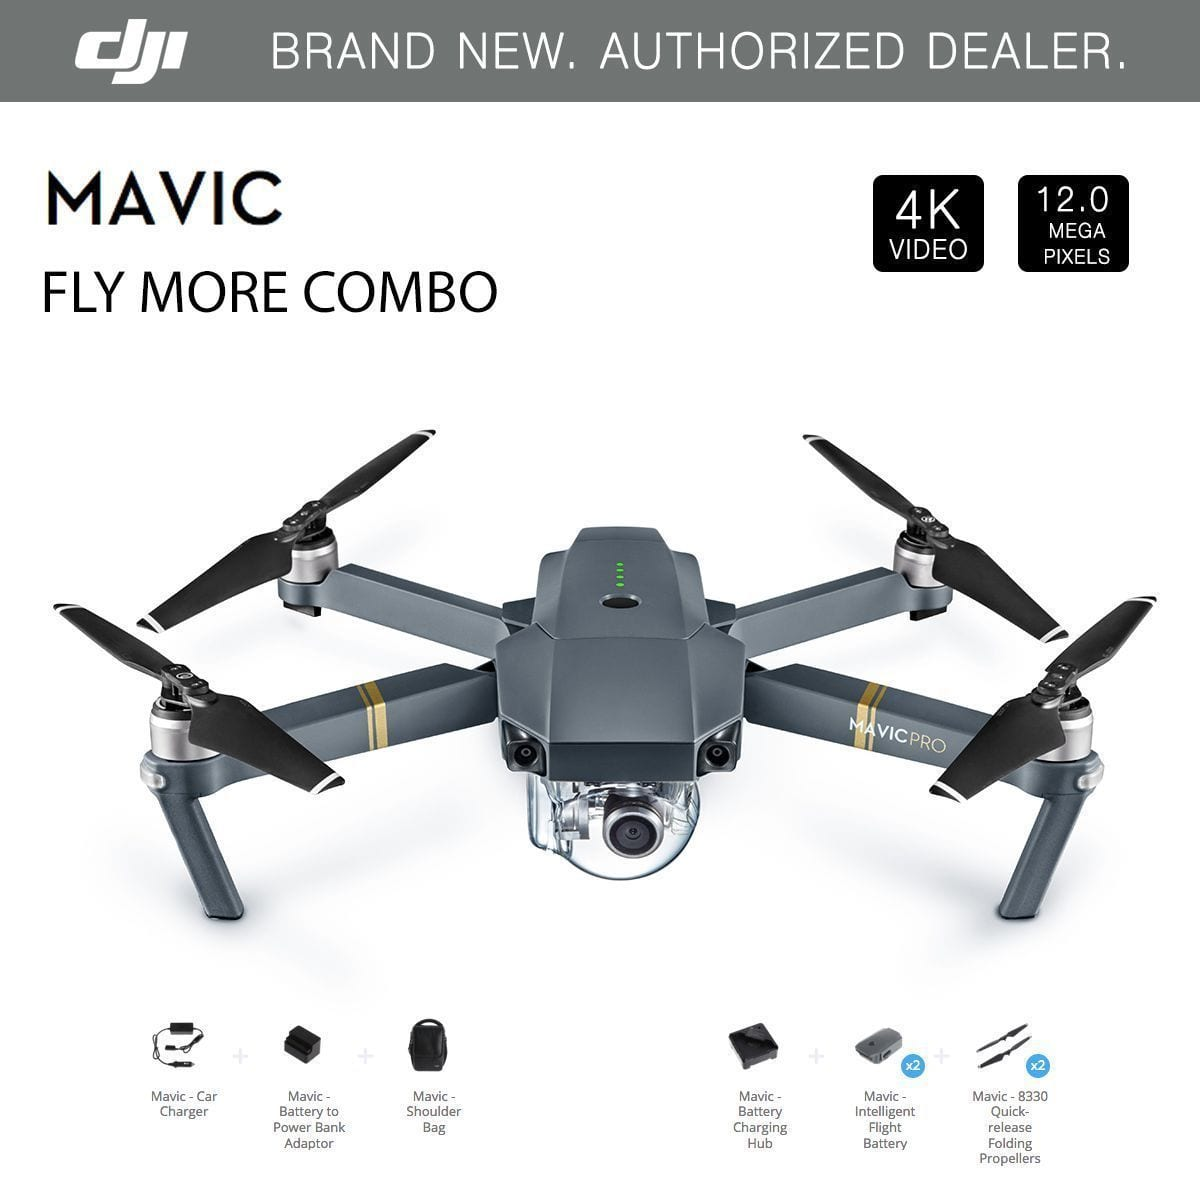 DJI Mavic Pro Drone Fly More Combo for $719 (YMMV) - Page 2